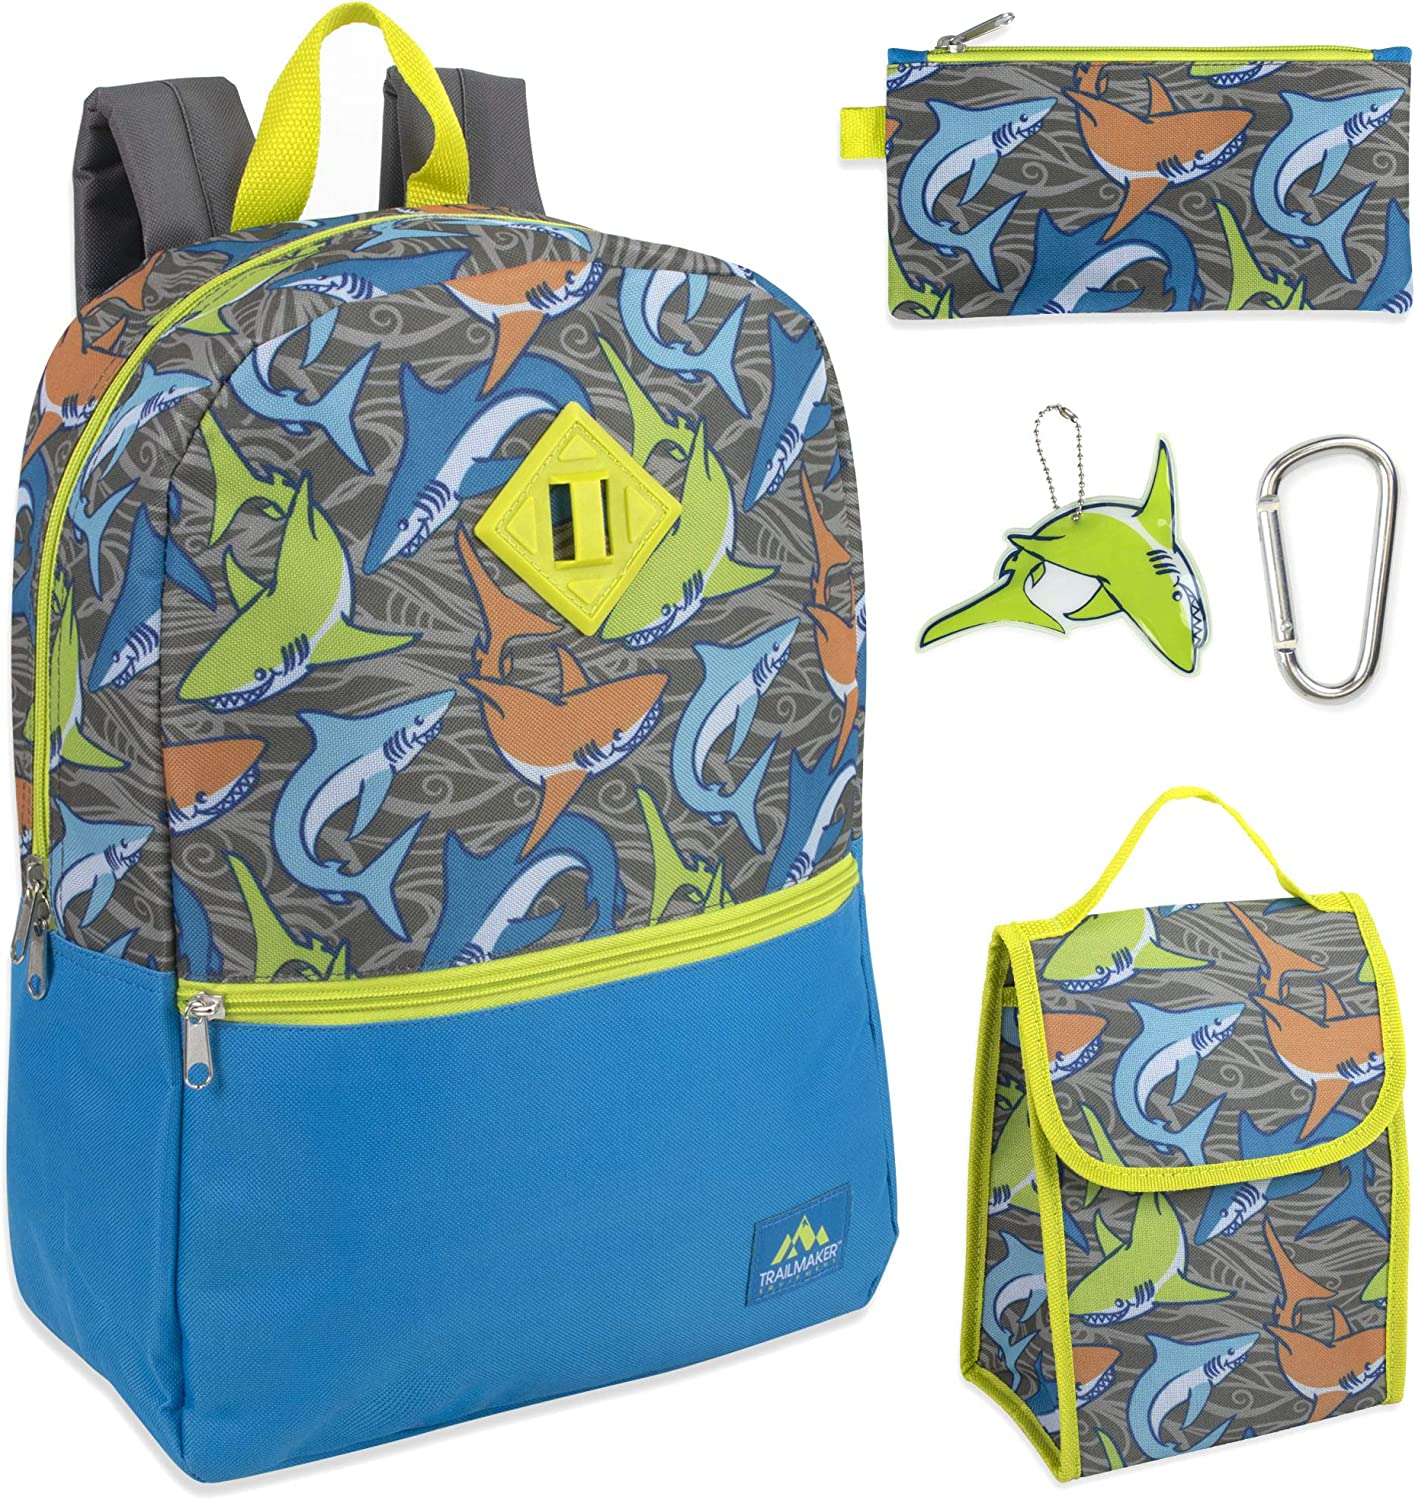 Trailmaker 5 in 1 Full Size Character School Backpack and Lunch Bag Set For Boys